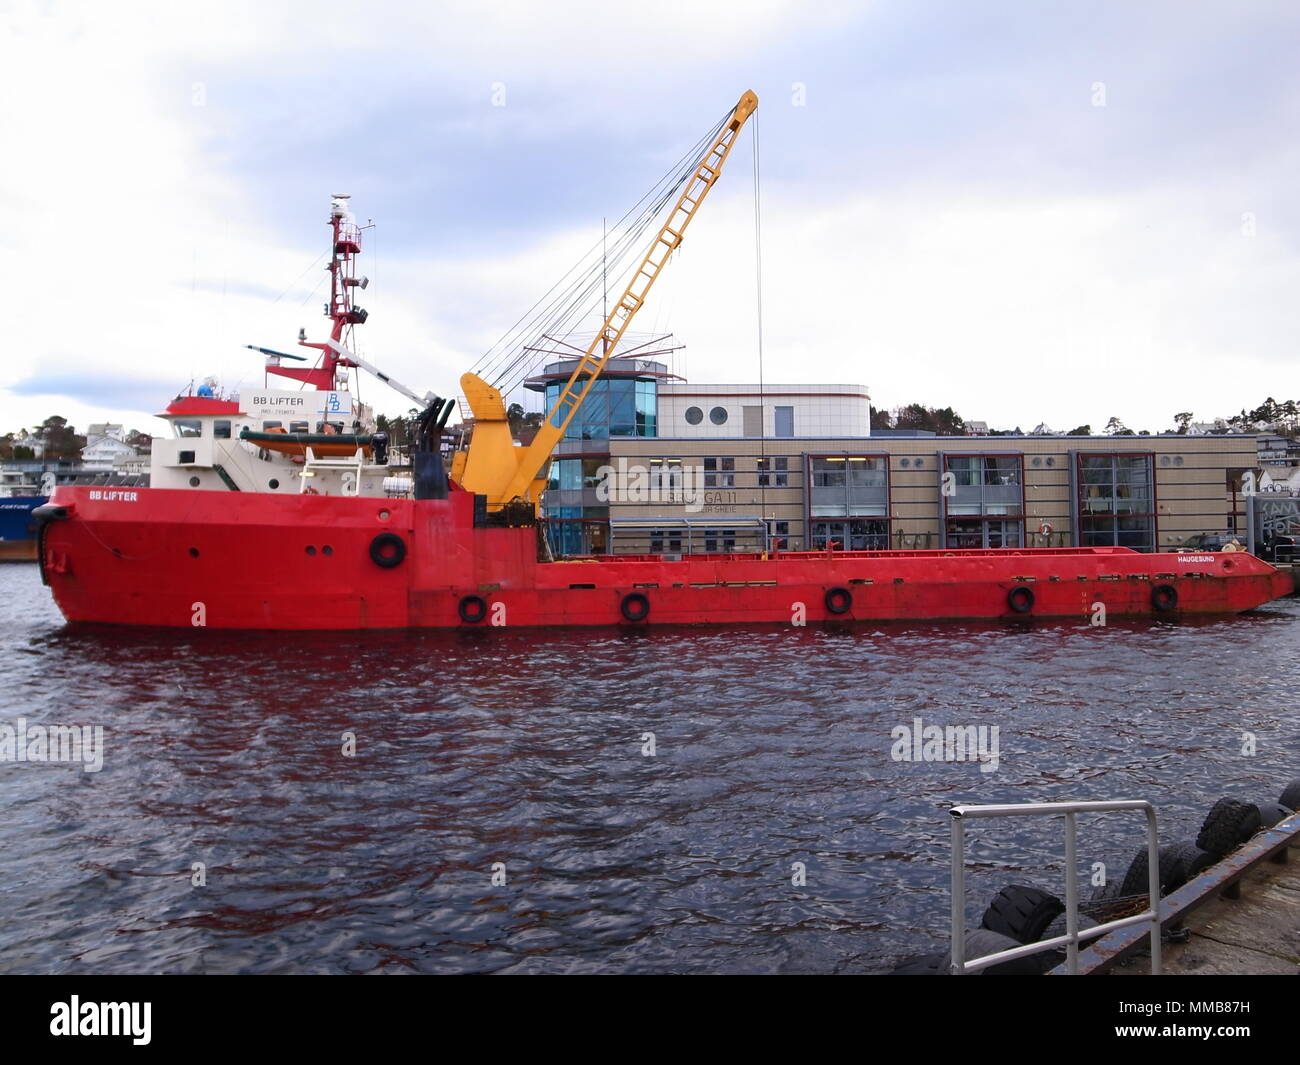 BB Lifter offshore supply ship in Stord, Liervik, Norway - Stock Image